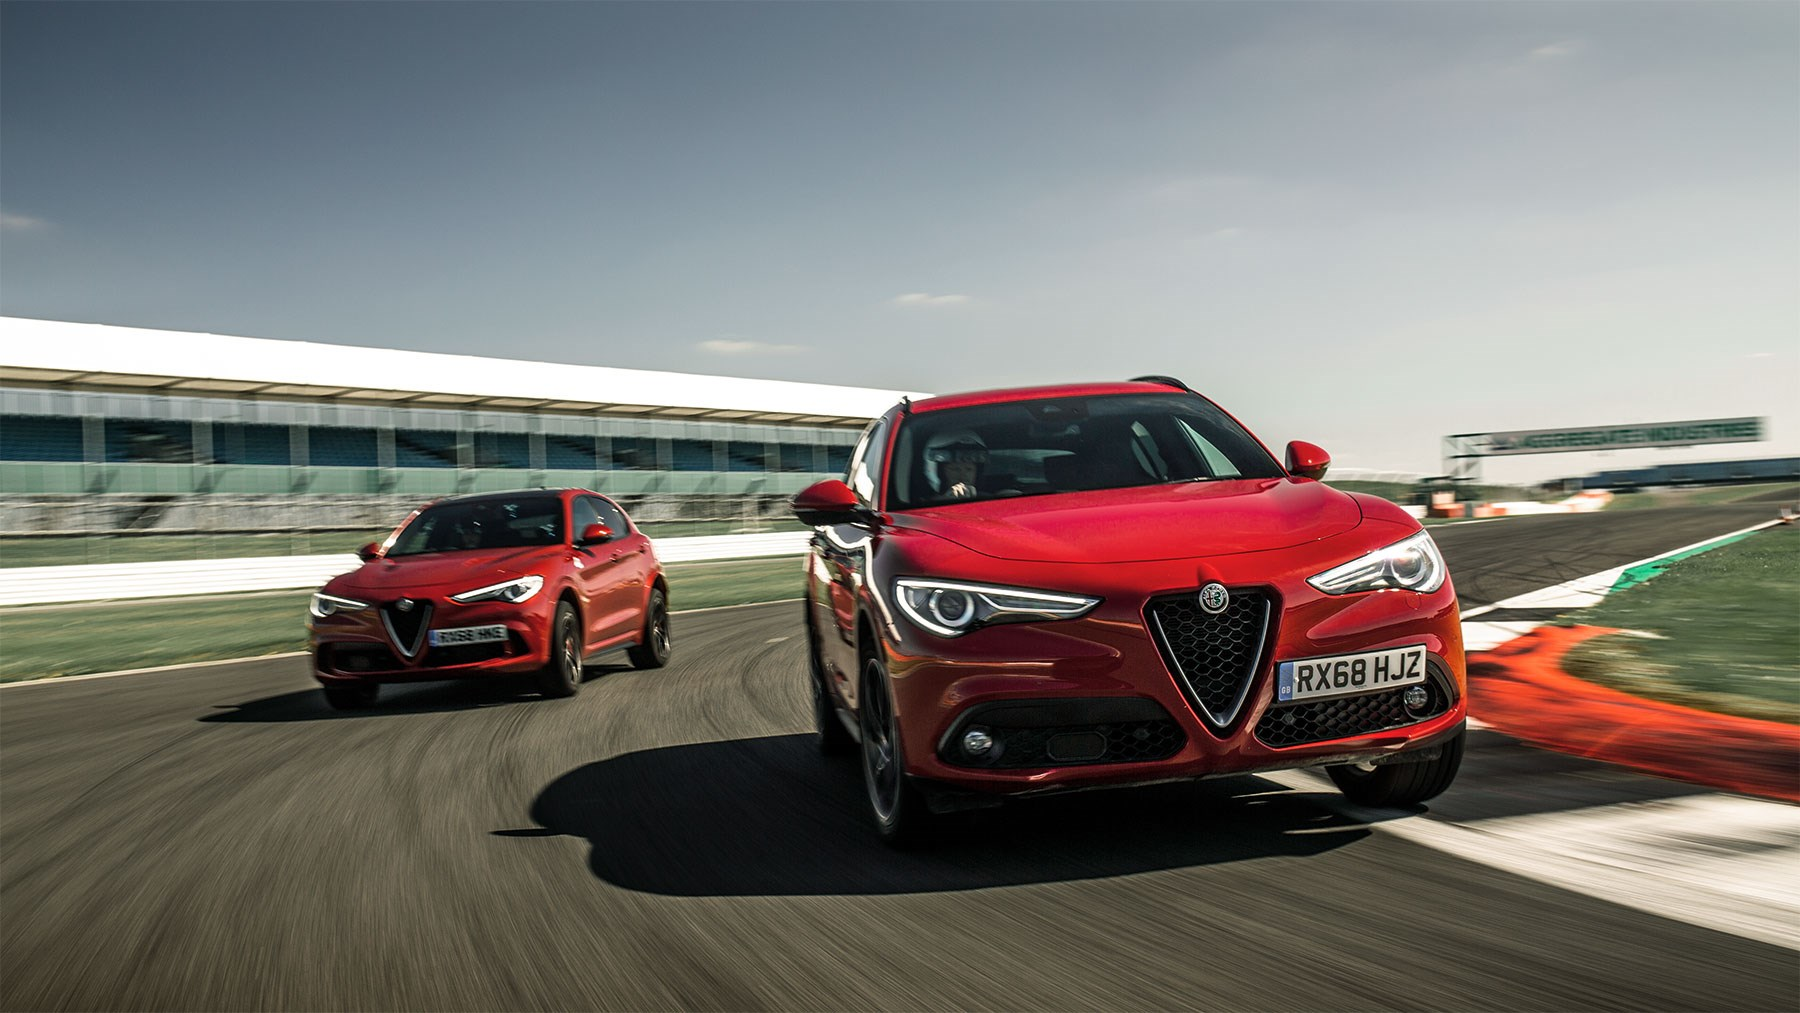 We set an unofficial diesel lap record of the Silverstone circuit in Northamptonshire in our Stelvio